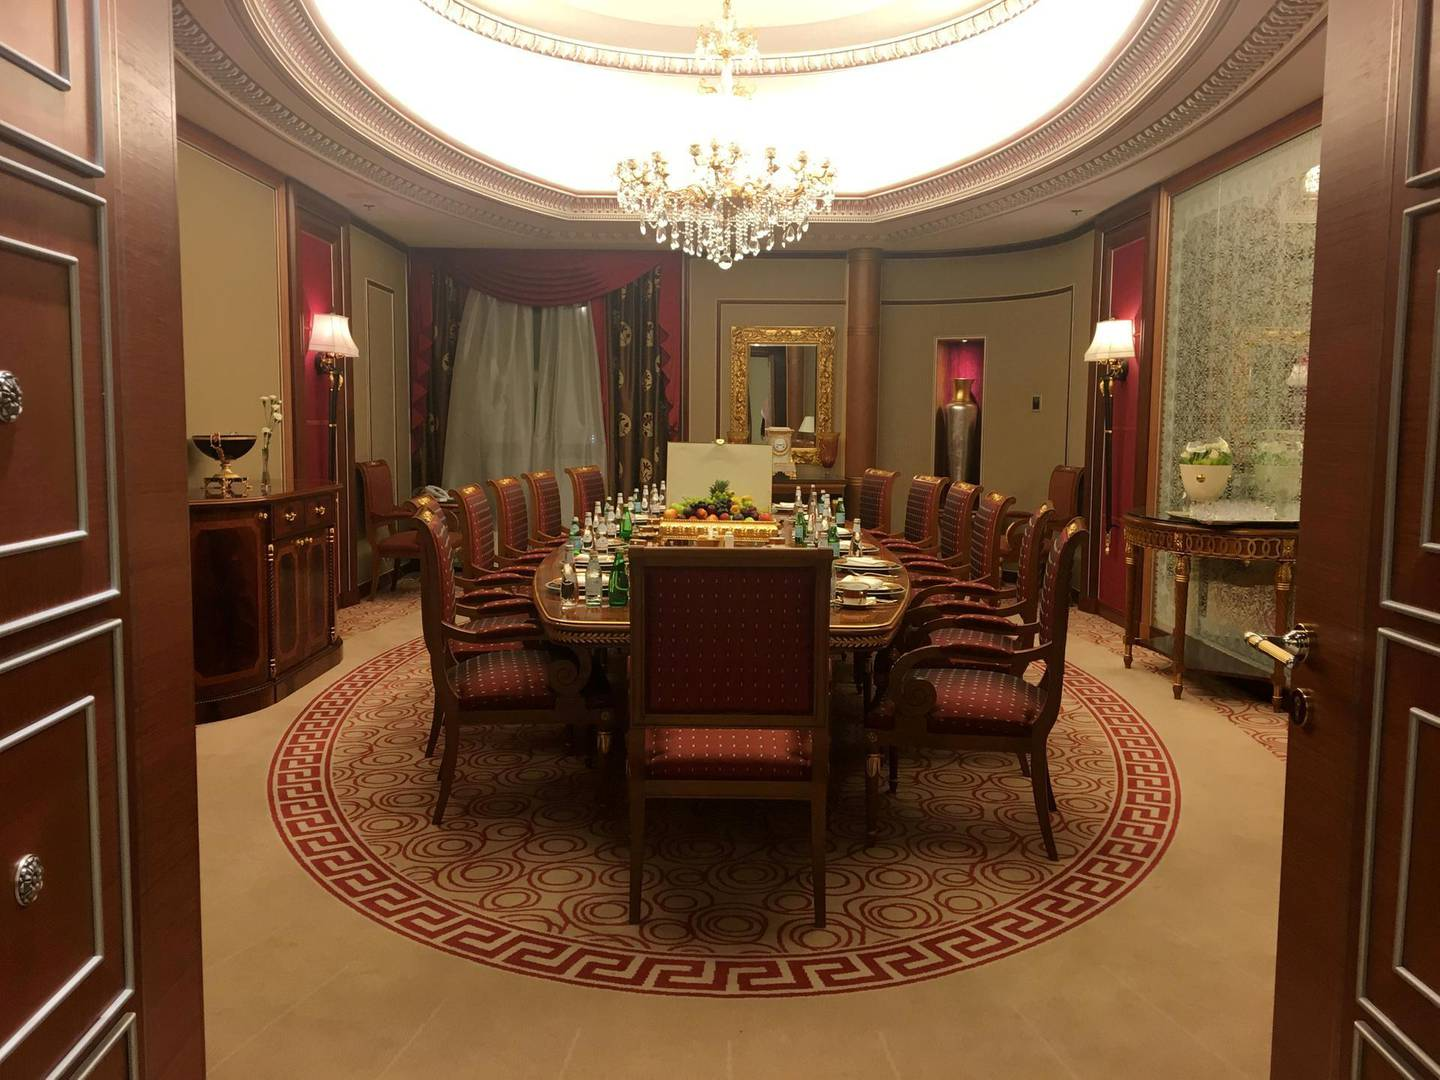 FILE PHOTO: A view shows part of the suite where Saudi Arabian billionaire Prince Alwaleed bin Talal has been detained, at the Ritz-Carlton in Riyadh, Saudi Arabia January 27, 2018, REUTERS/Katie Paul/File Photo